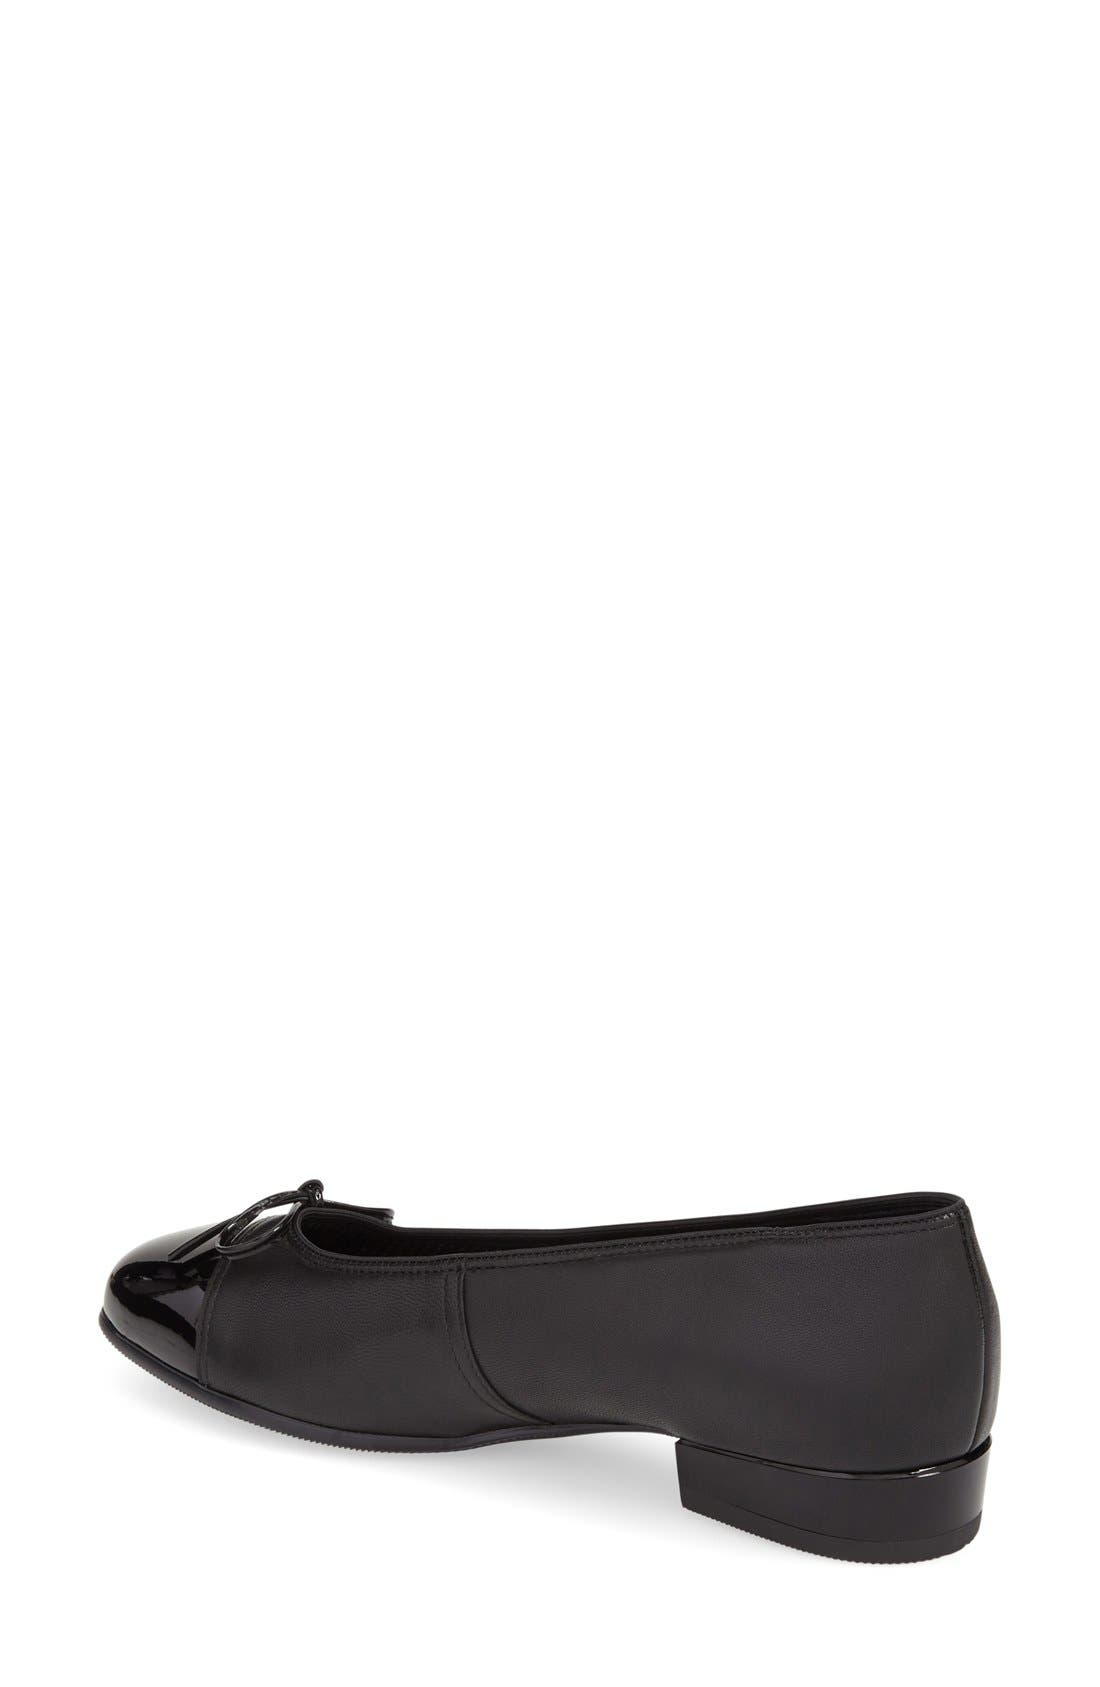 'Bel' Cap Toe Pump,                             Alternate thumbnail 2, color,                             Black Leather